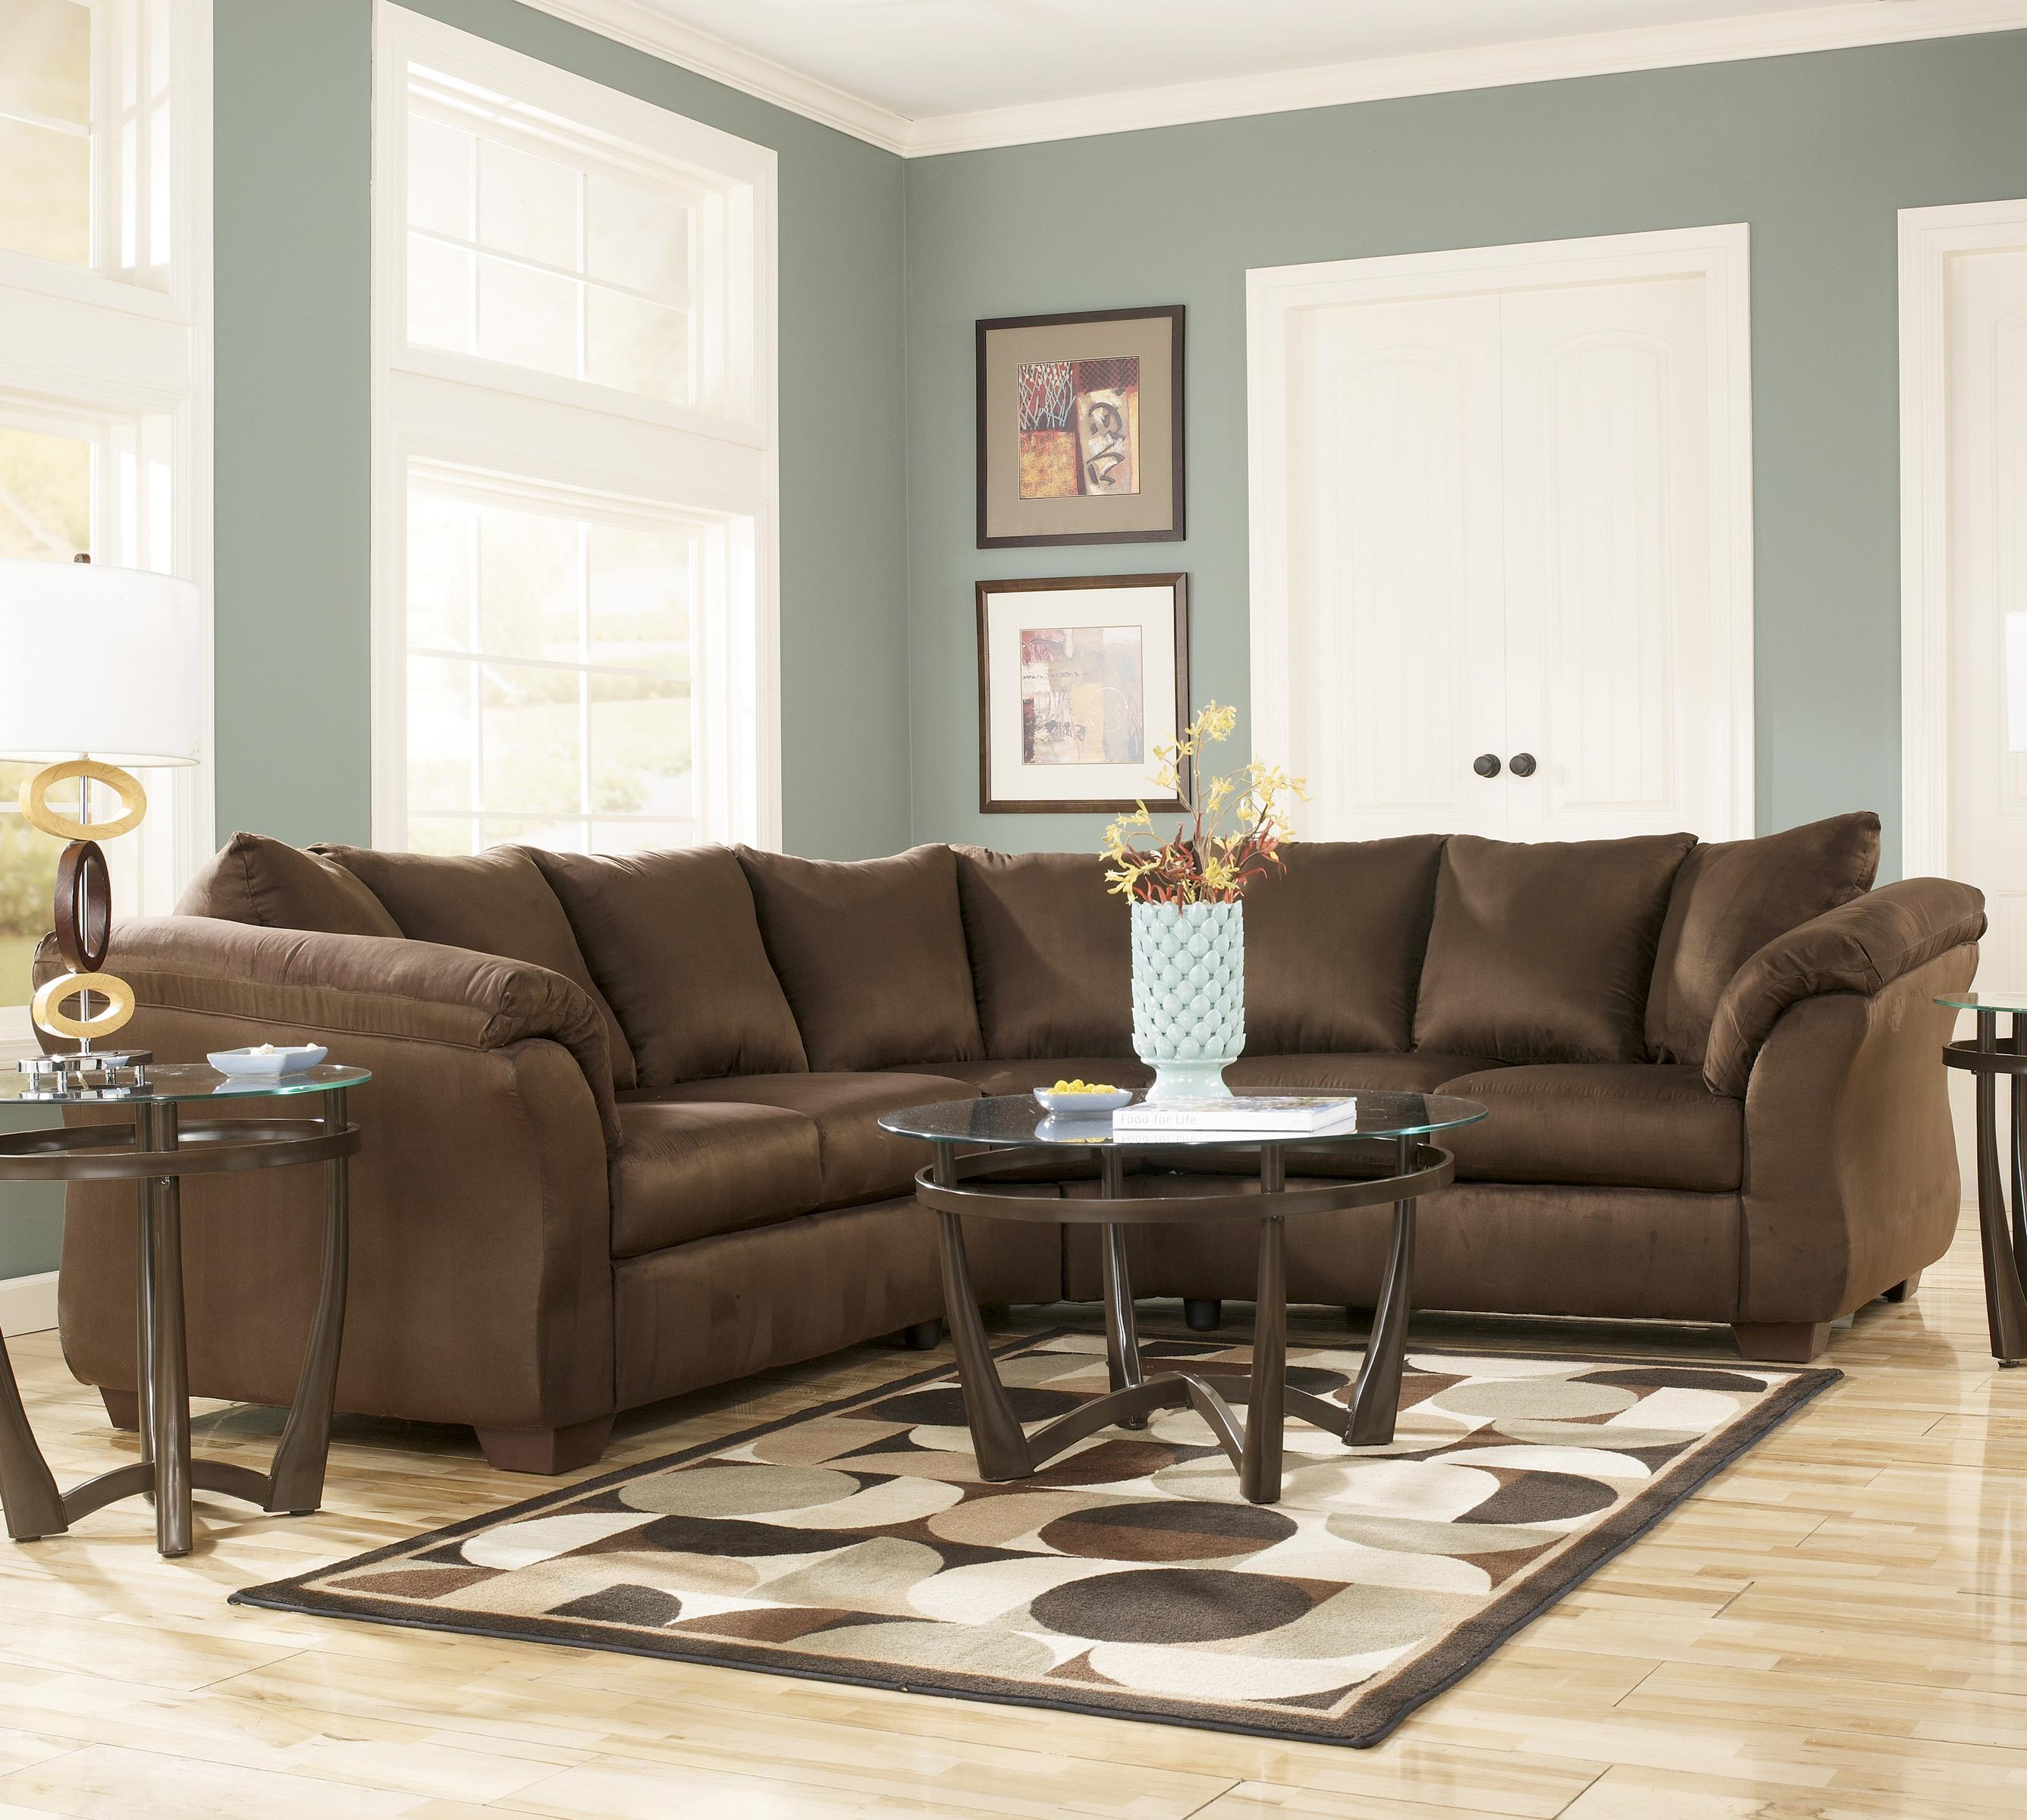 Contemporary Sectional Sofa with Sweeping Pillow Arms by